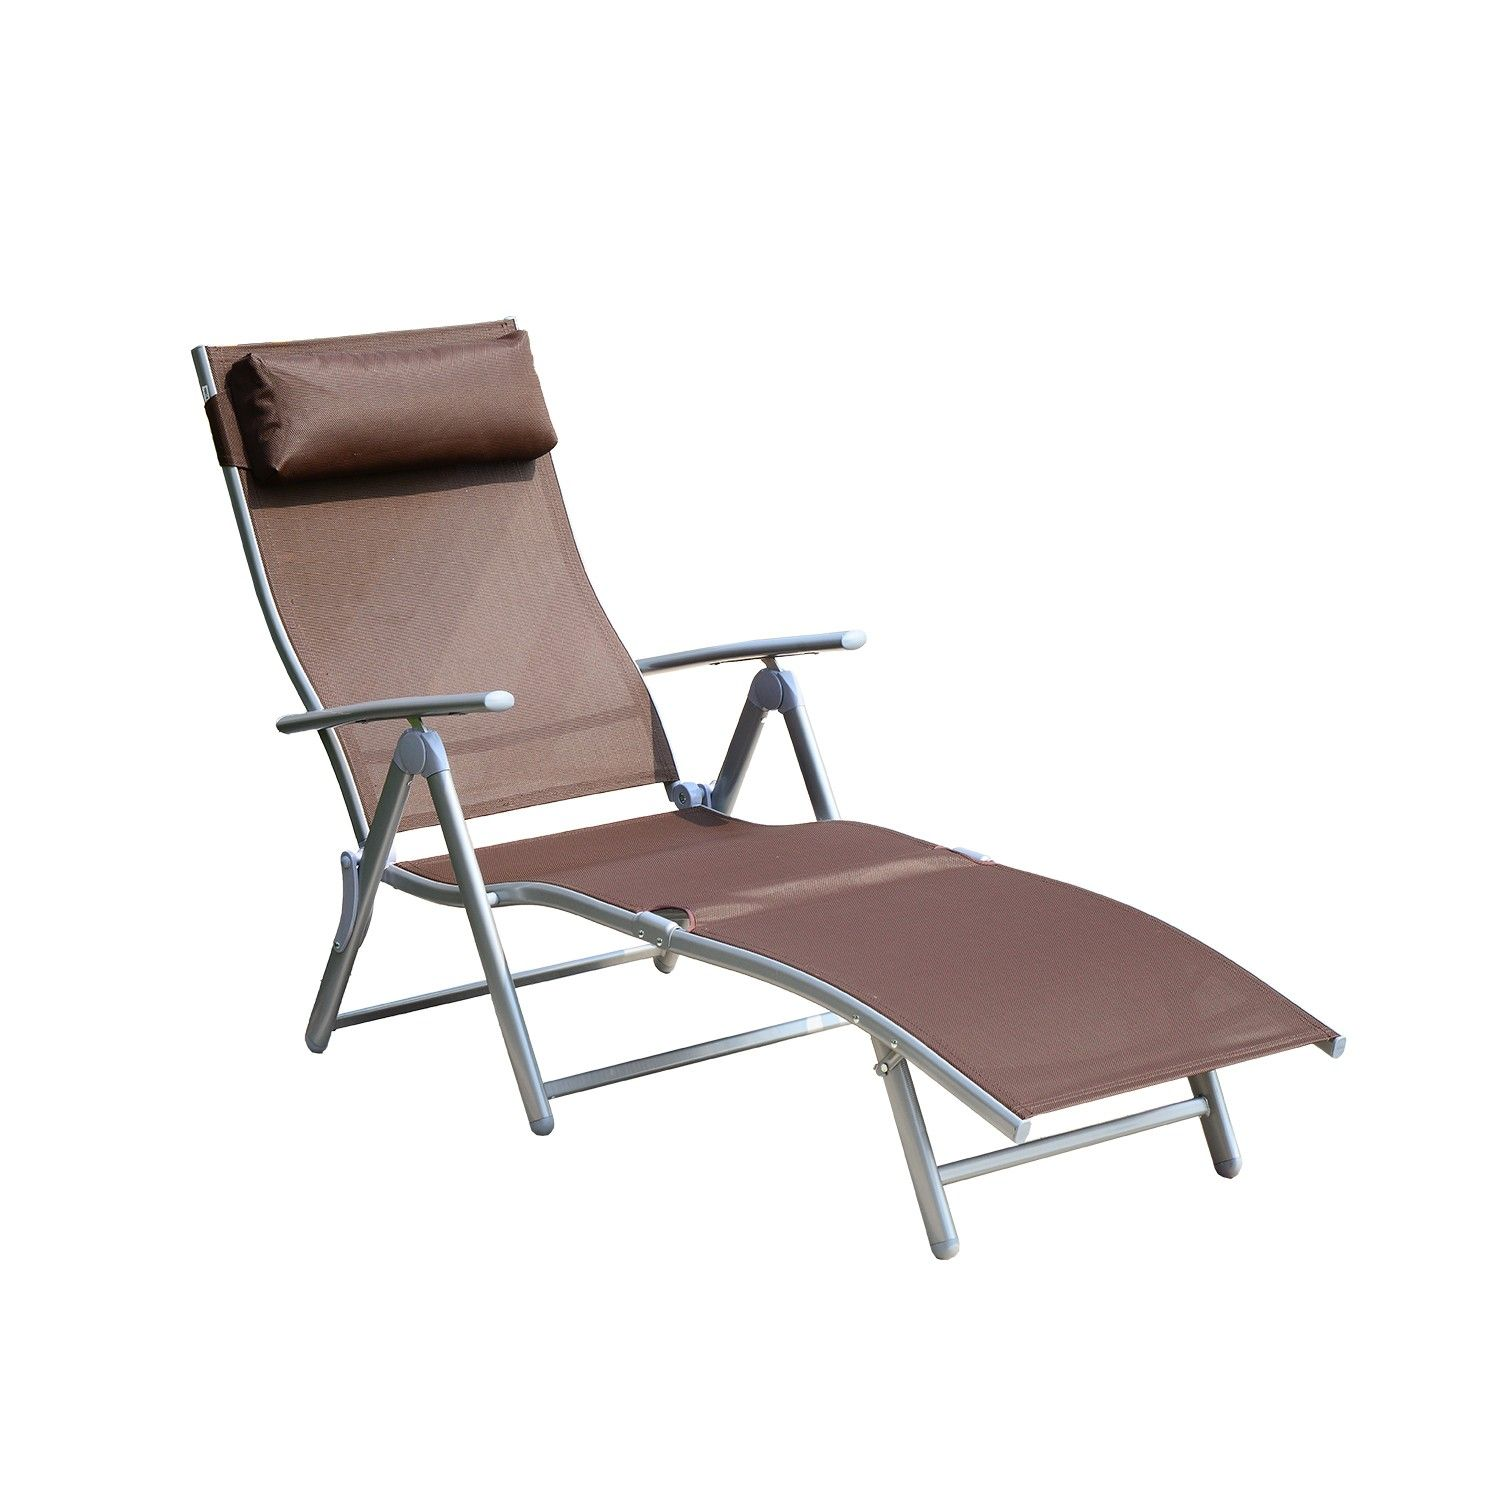 Pin On Outdoor Lounge Chair Cushions Clearance